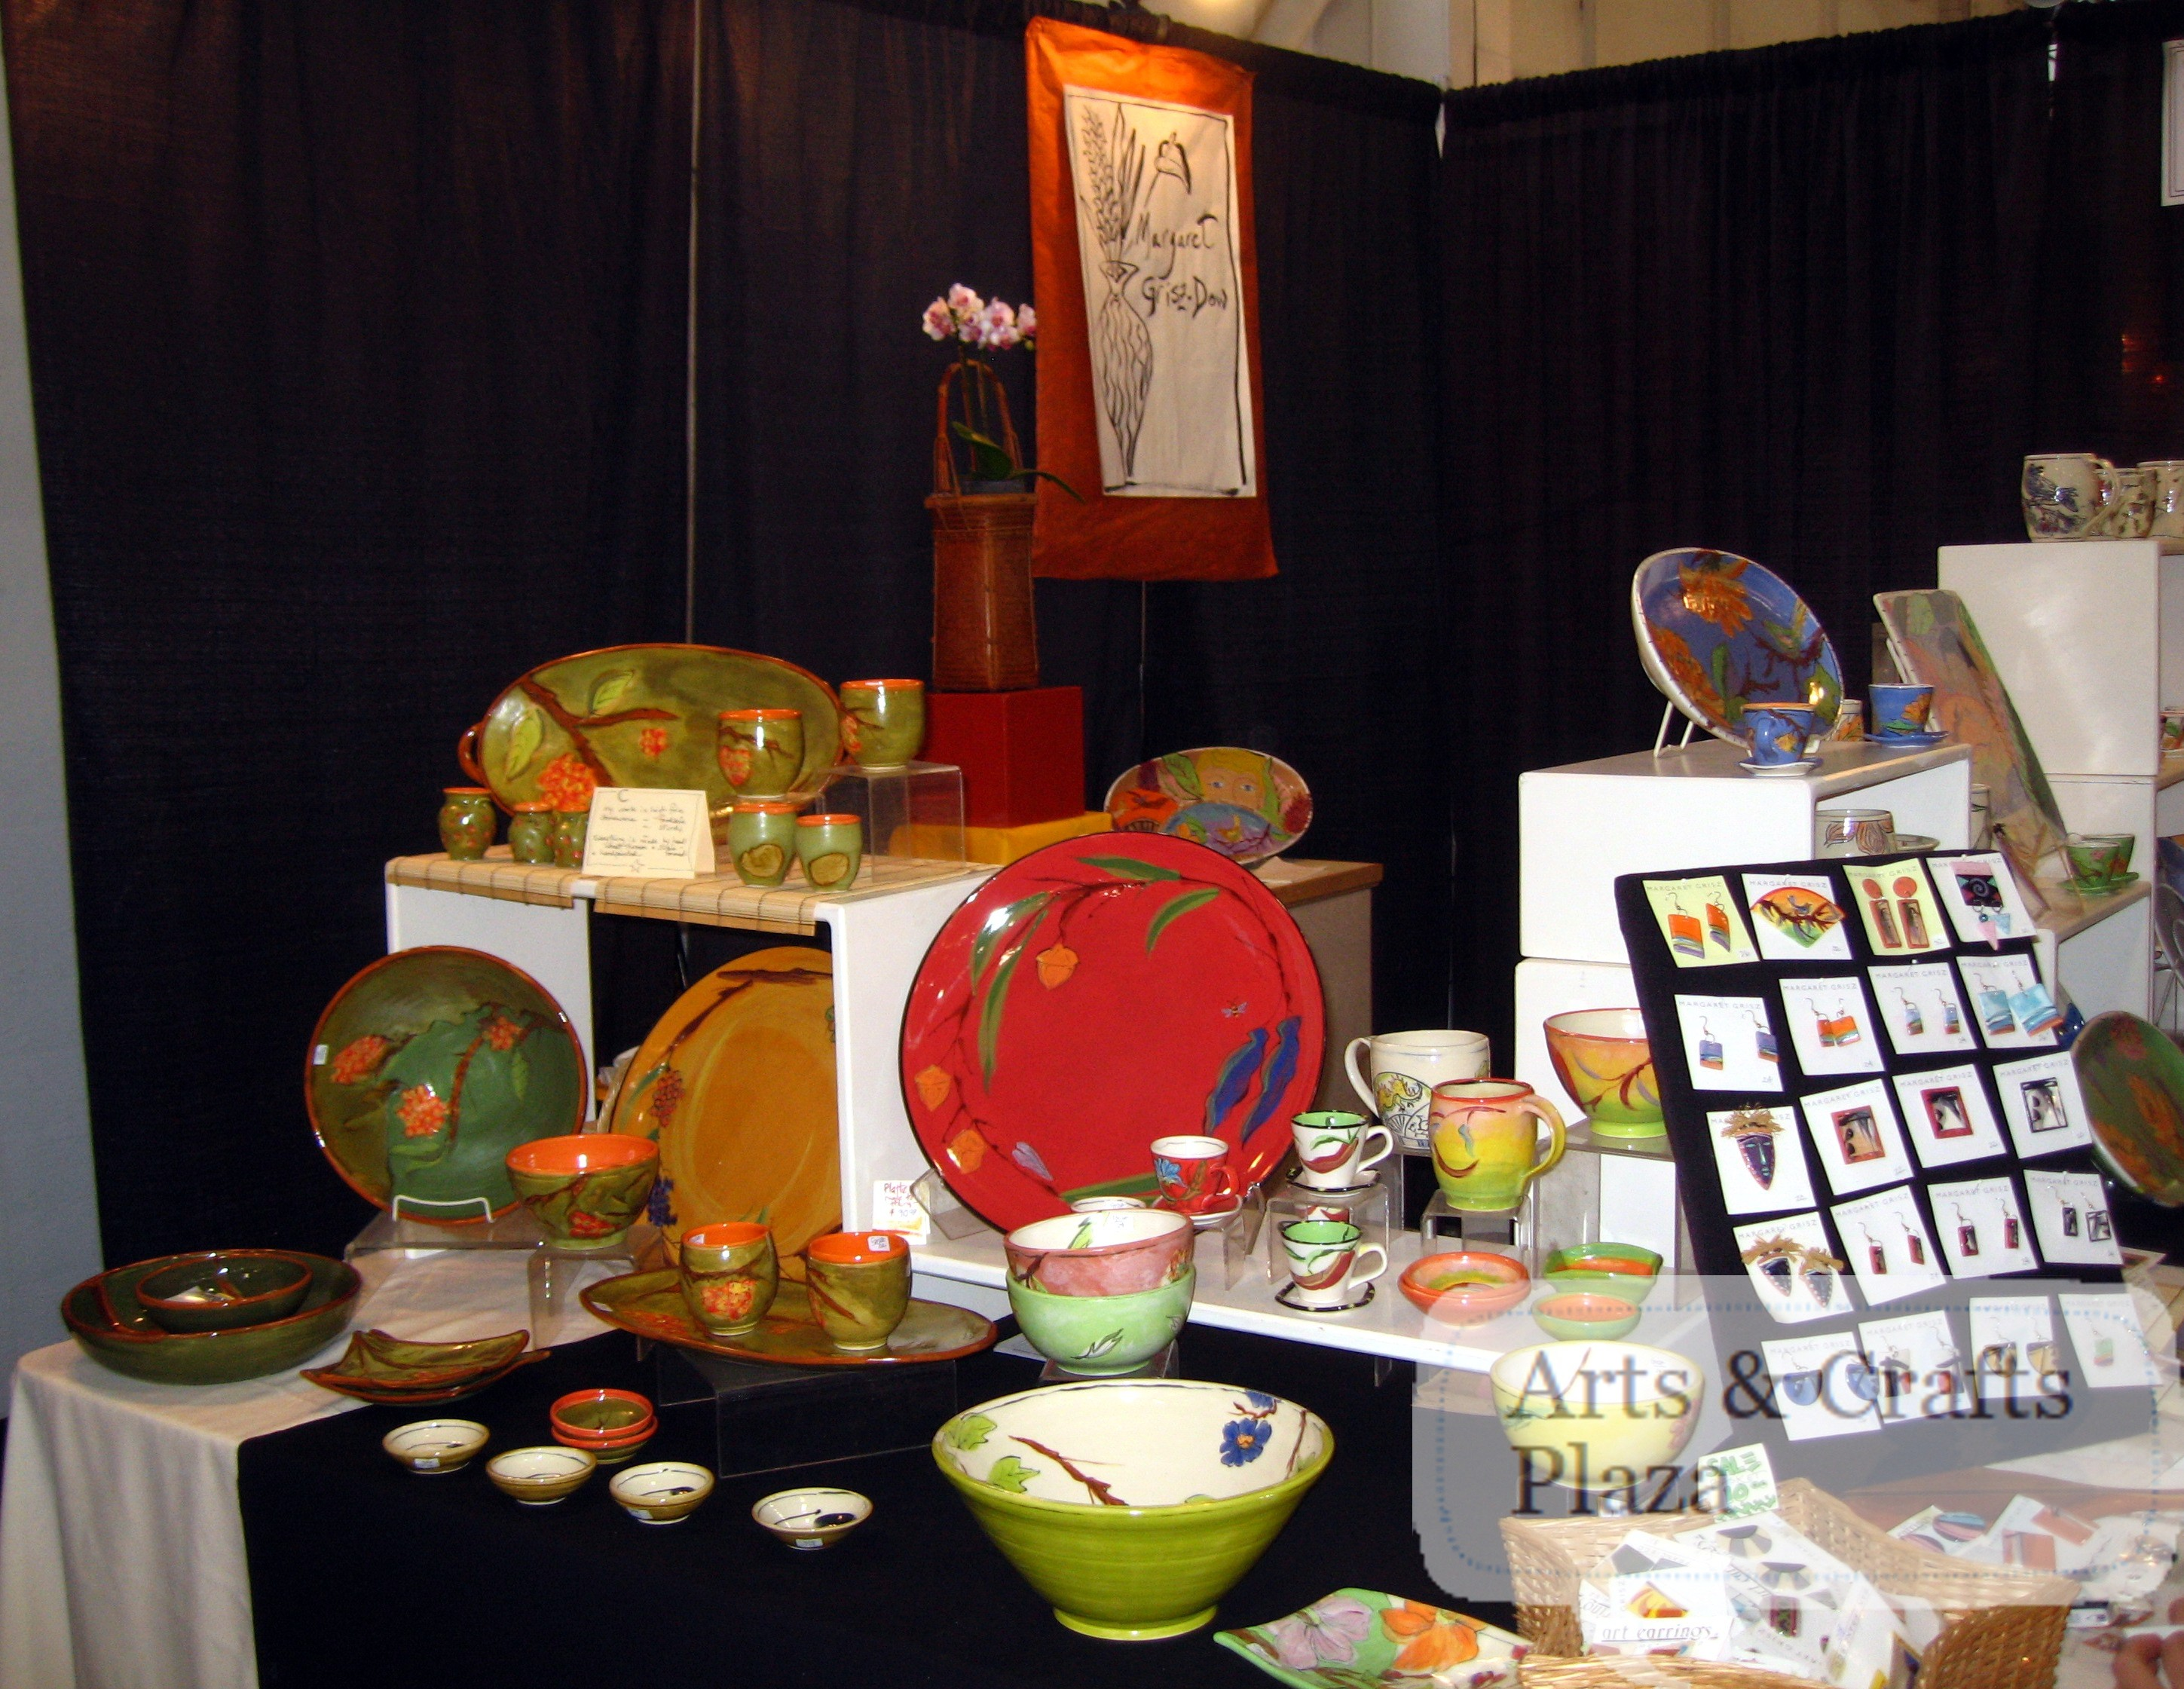 Celebration Of Craftswomen Arts And Crafts Show